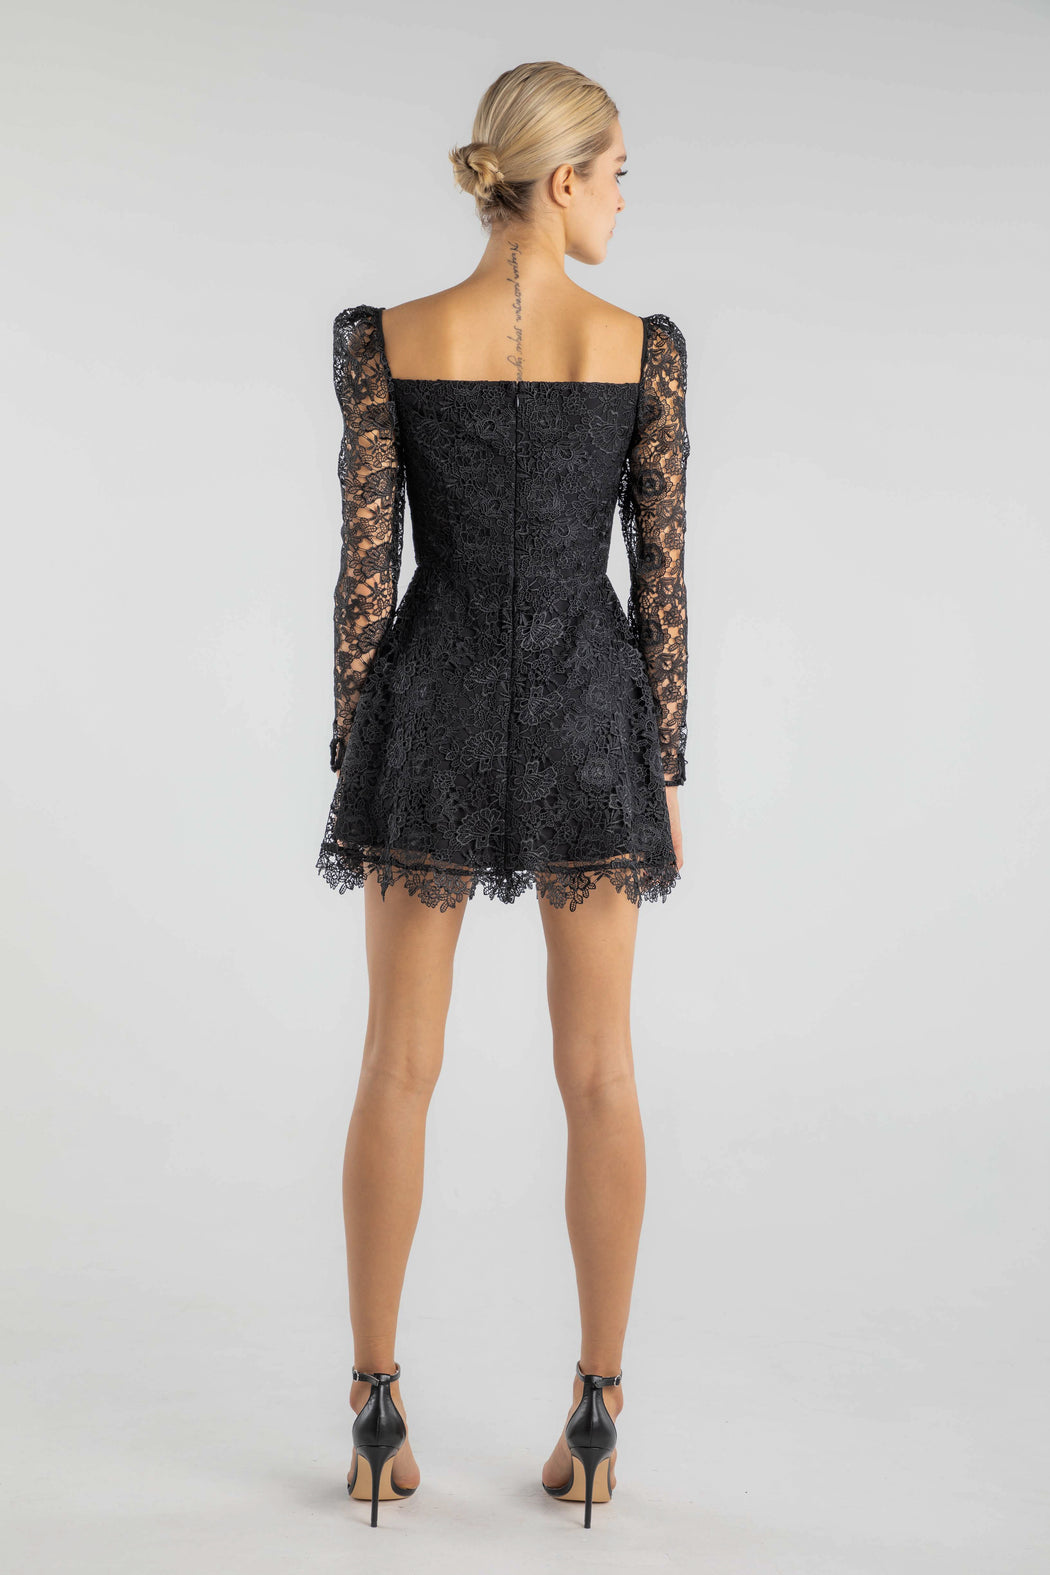 Colette Lace Mini Dress - SAU LEE